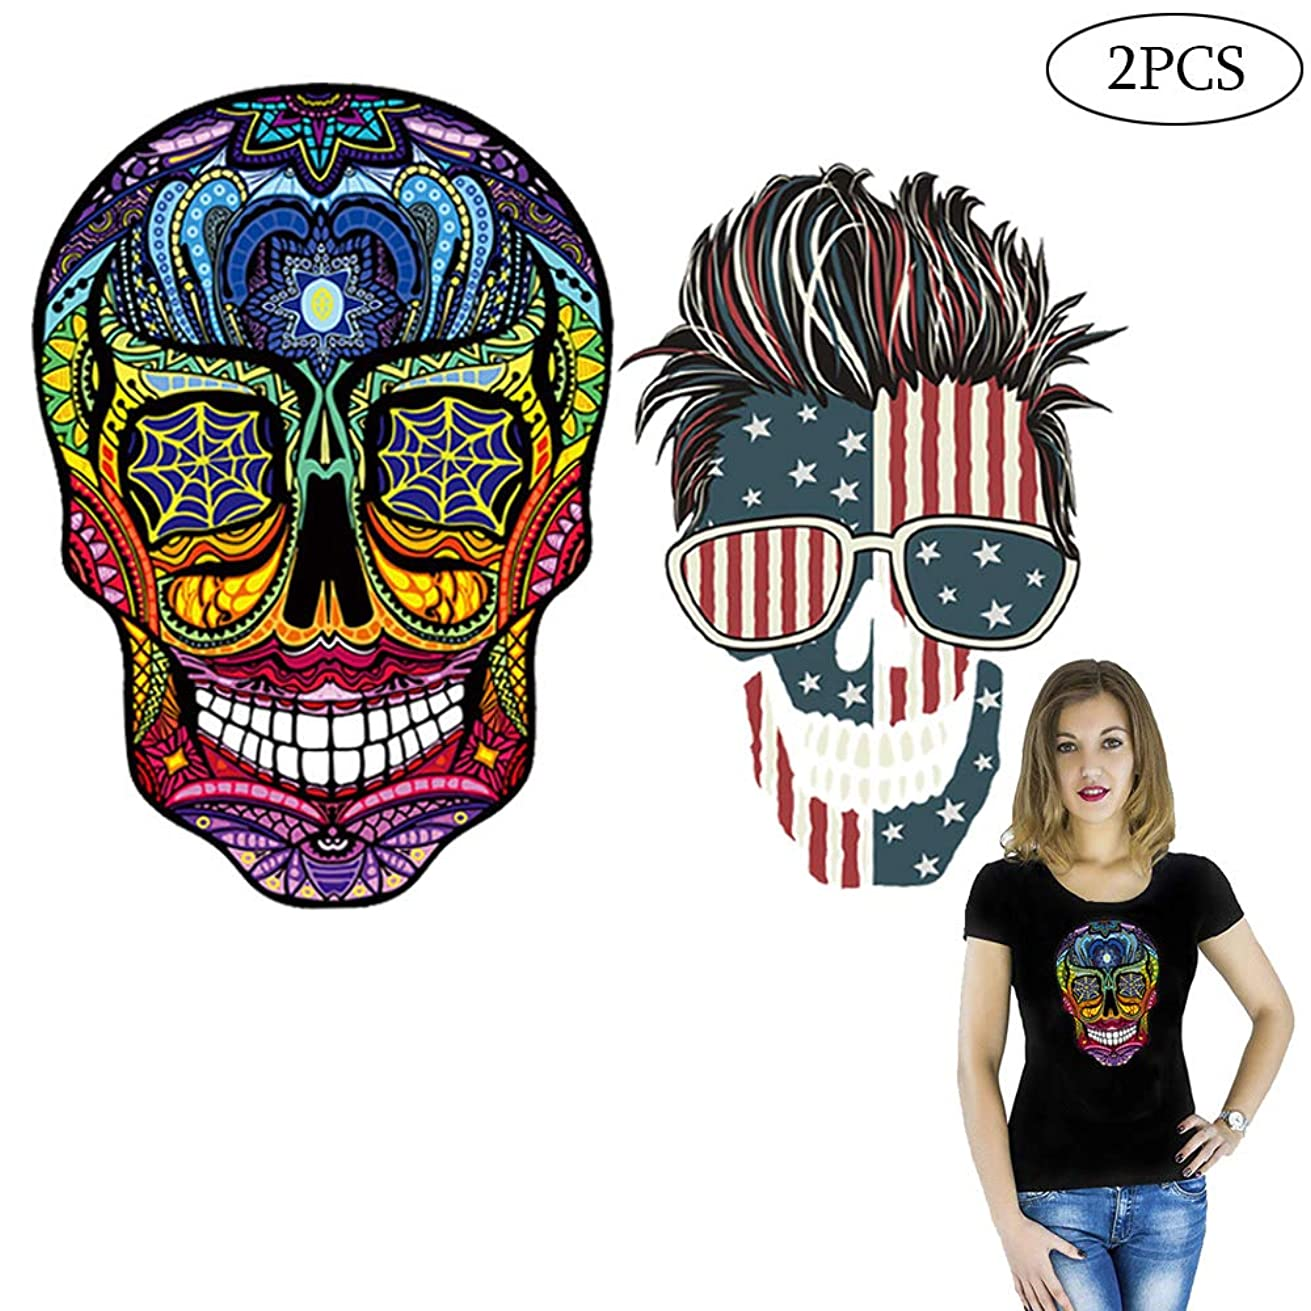 Flag Patches Skull Patches Heat Transfer Stickers American Flag Embroidered Colorful Applique Sew on Iron on Patch for Men Women Kids Clothing,T-Shirt, Jeans,Home Textiles DIY 2PCS